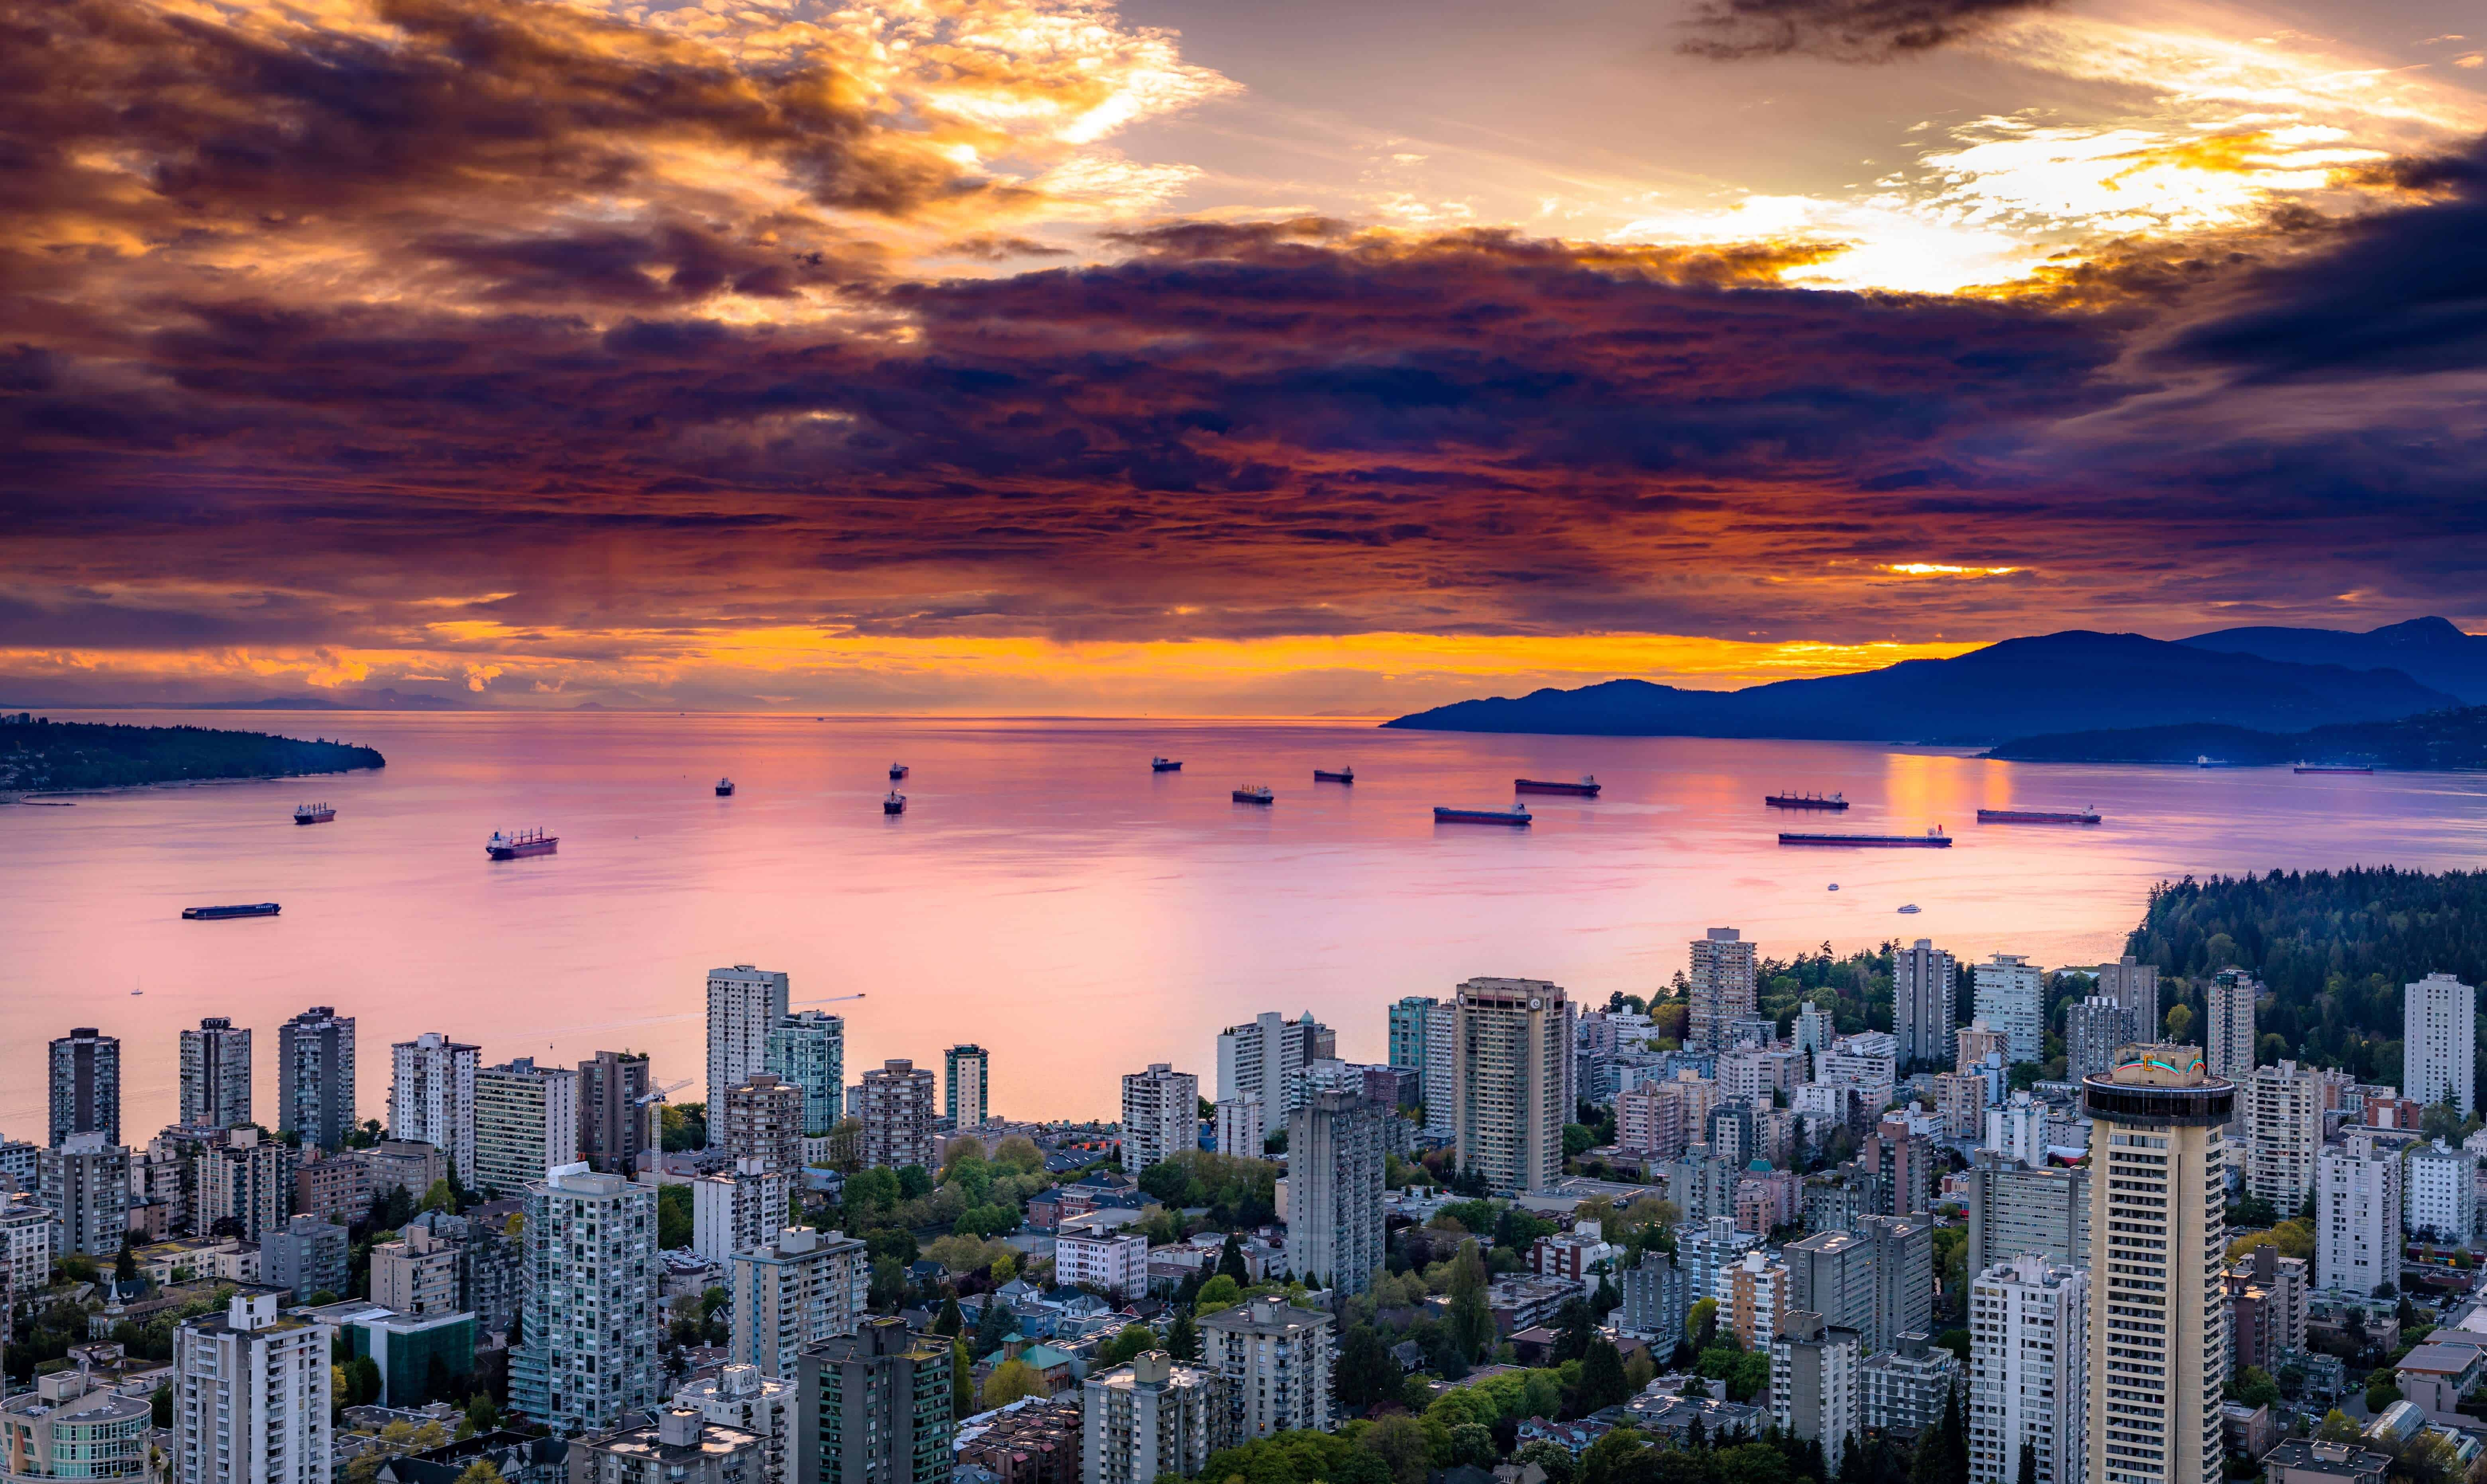 View overlooking Vancouver from a skyscrapper at sunset.